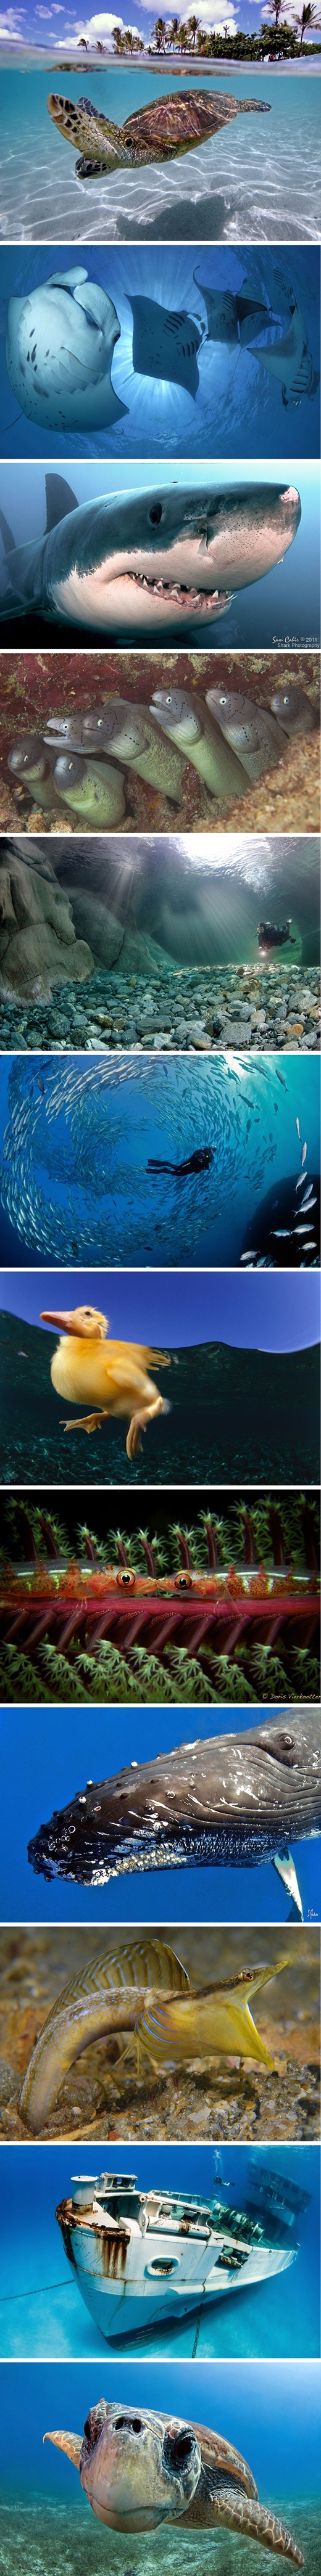 Amazing underwater photos.